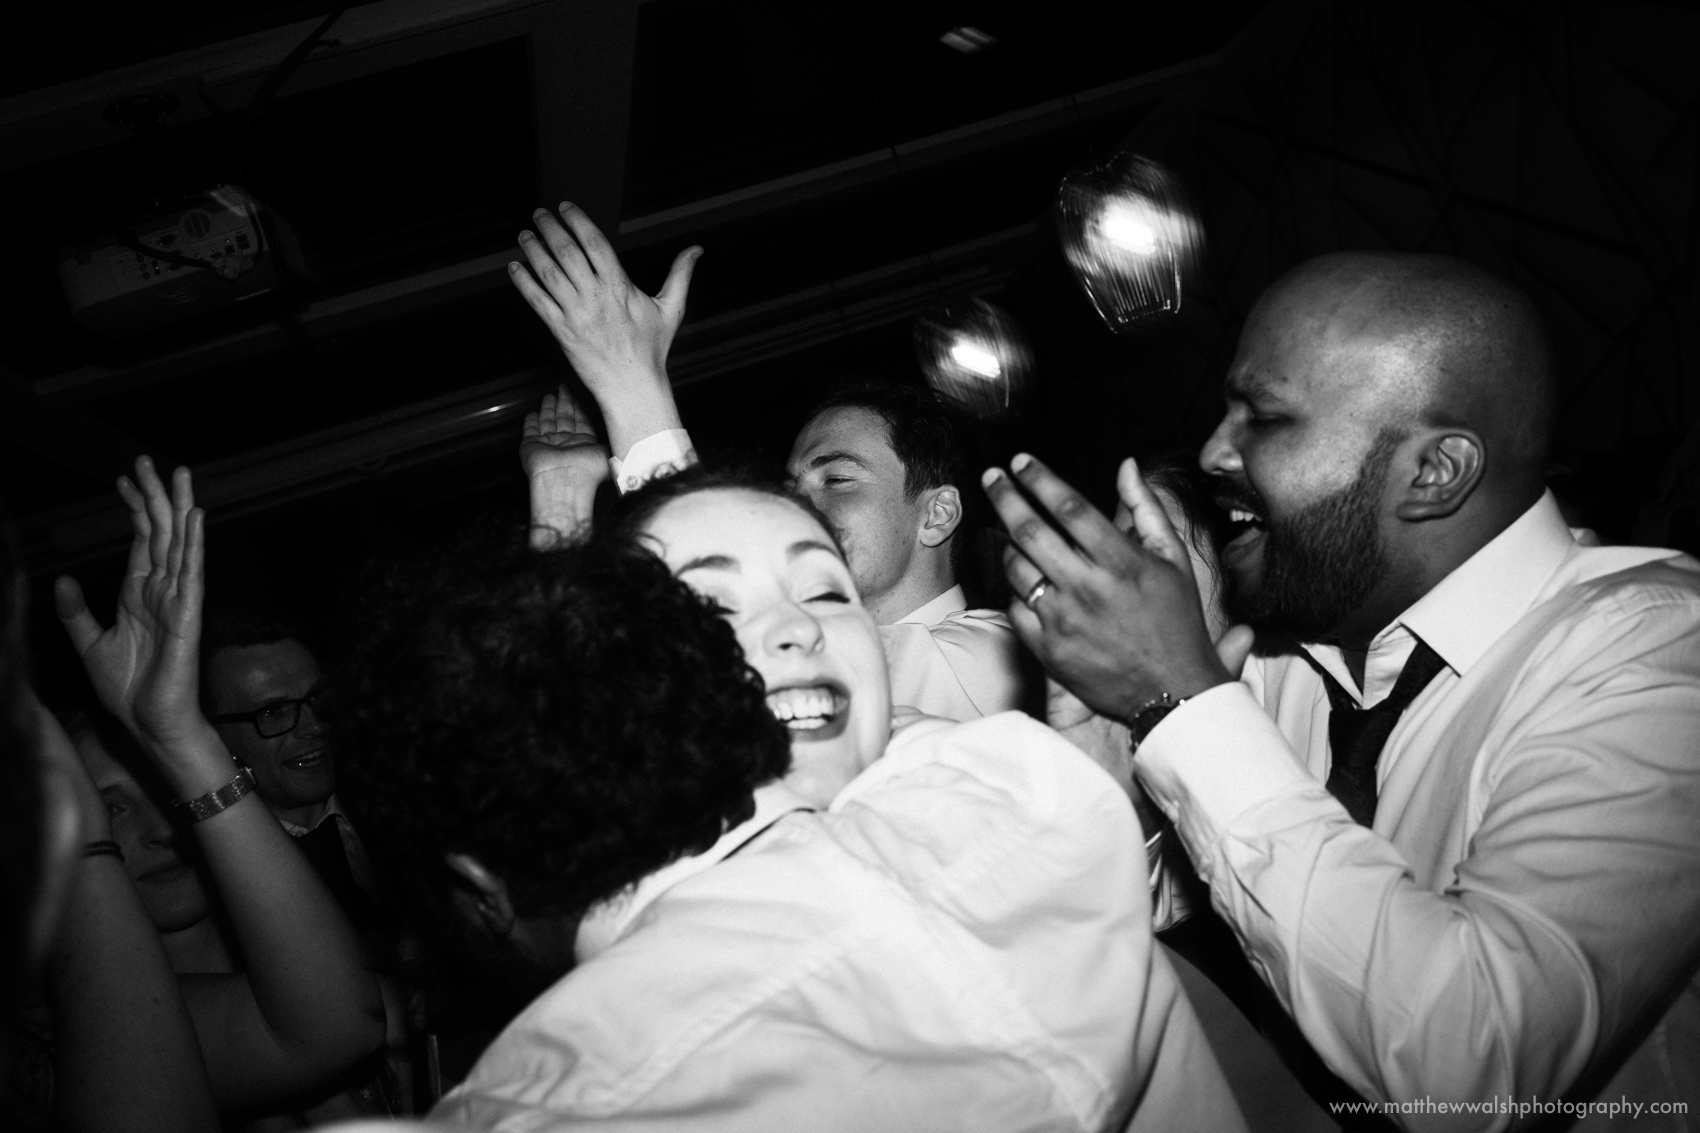 Guests dancing and hugging at an alternative wedding reception at the Living room in Central Manchester